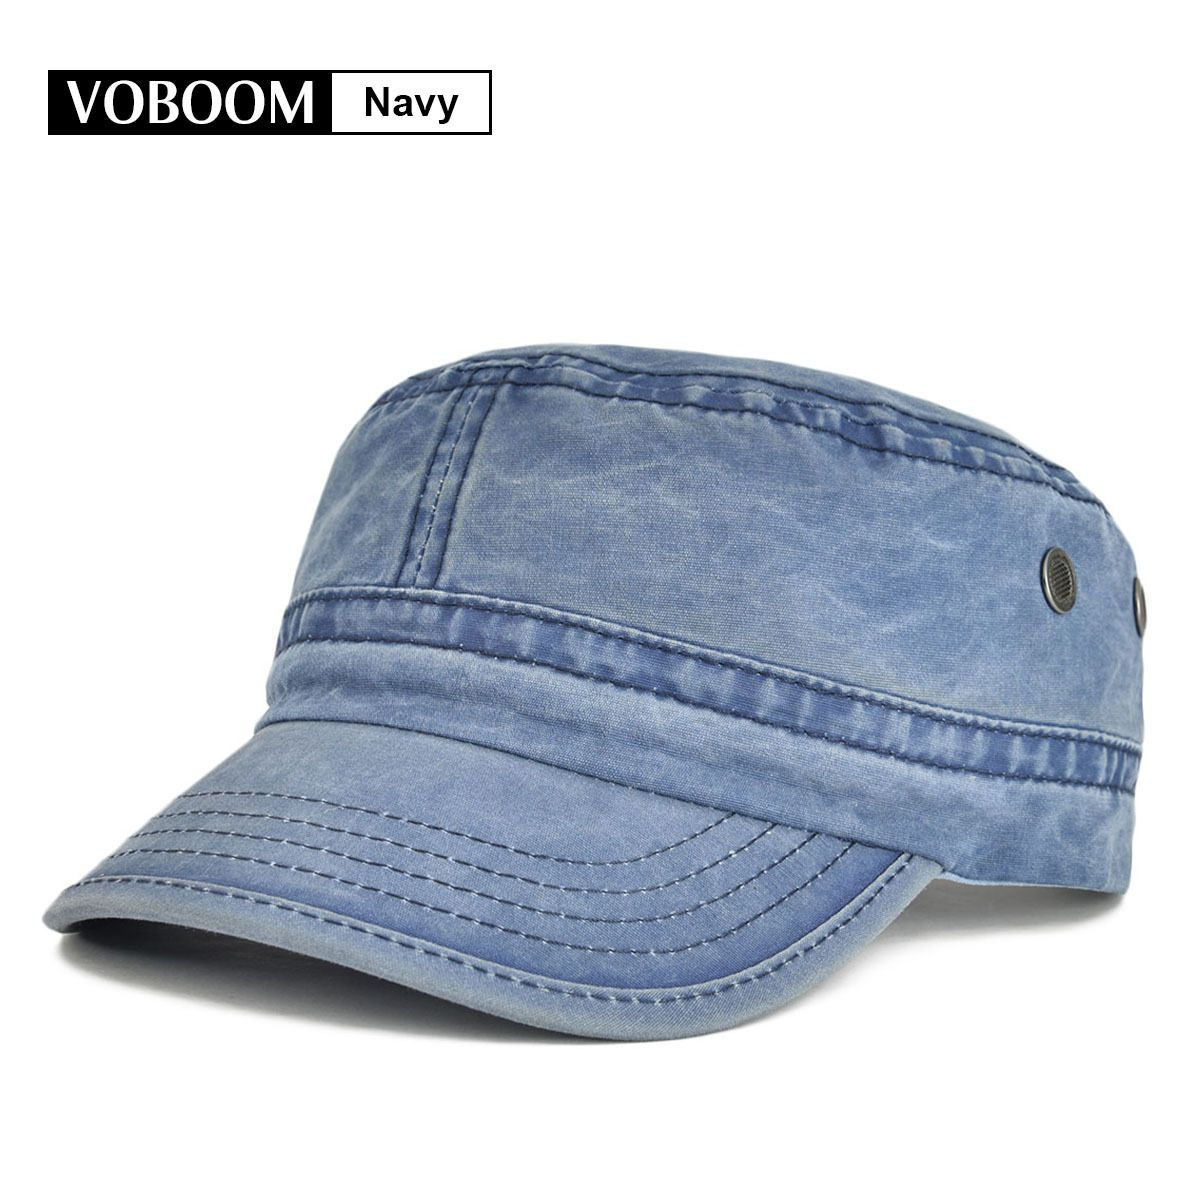 9676c9ba9 9.99AUD - Vintage Mens Army Cap Trucker Baseball Cap 100% Cotton ...